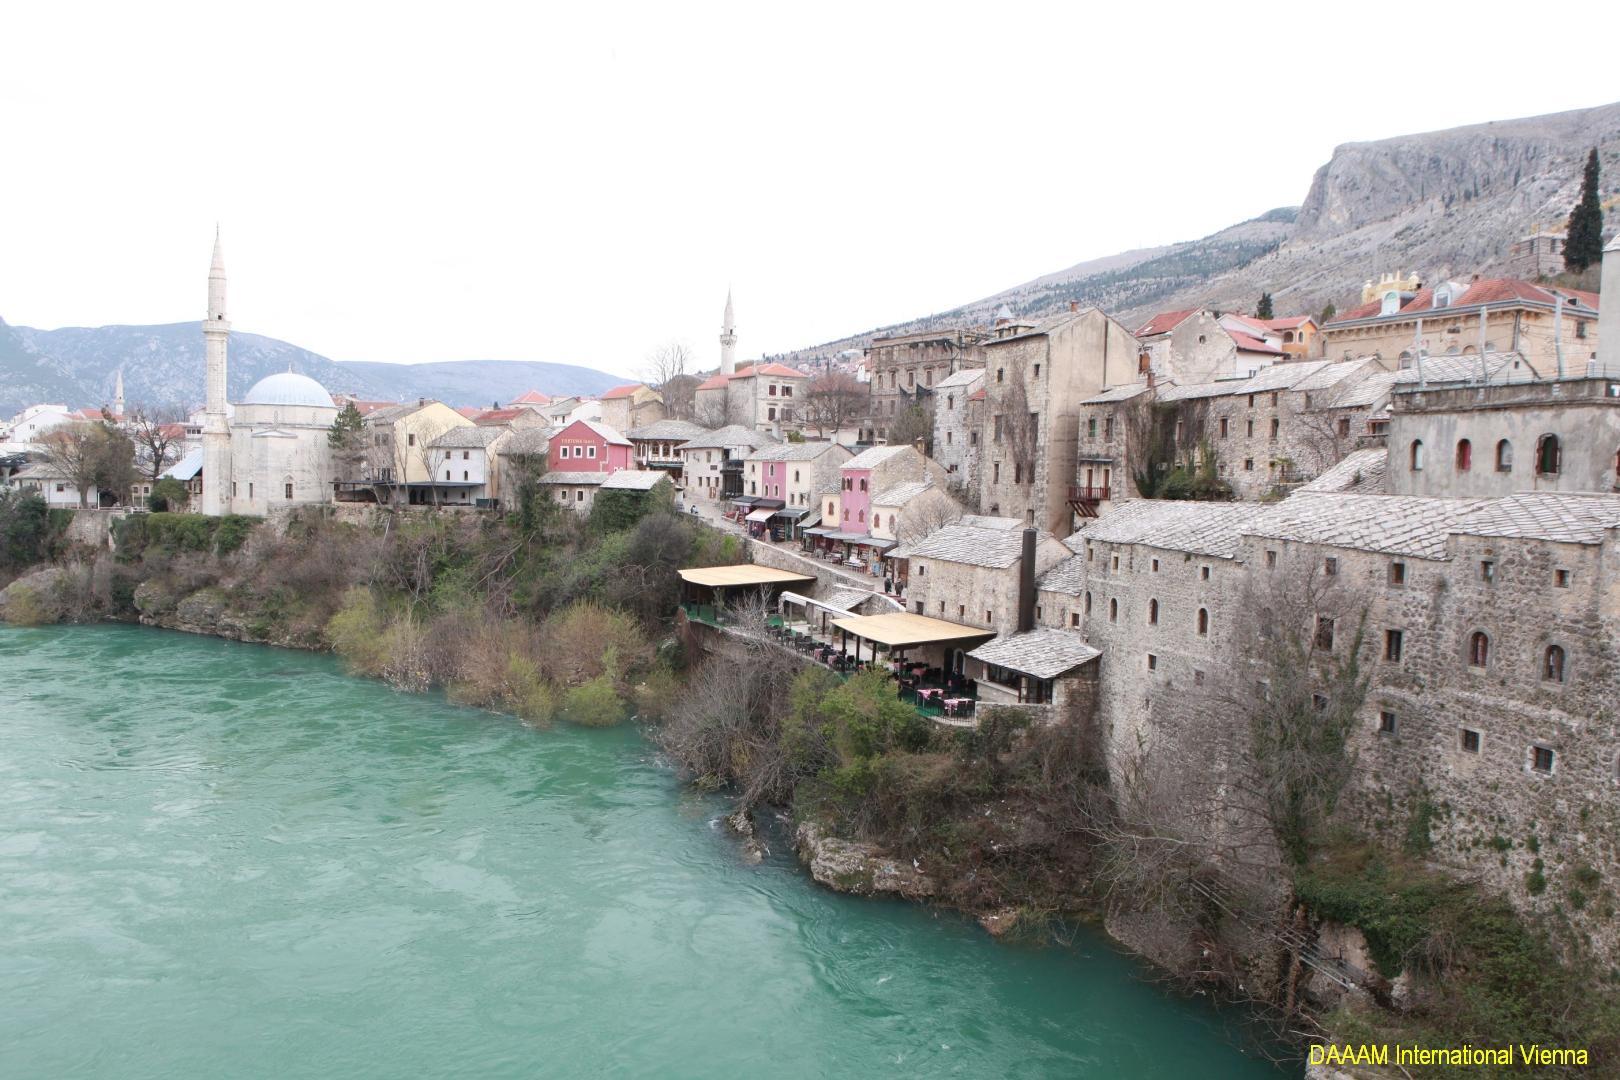 DAAAM_2016_Mostar_01_Magic_City_of_Mostar_067